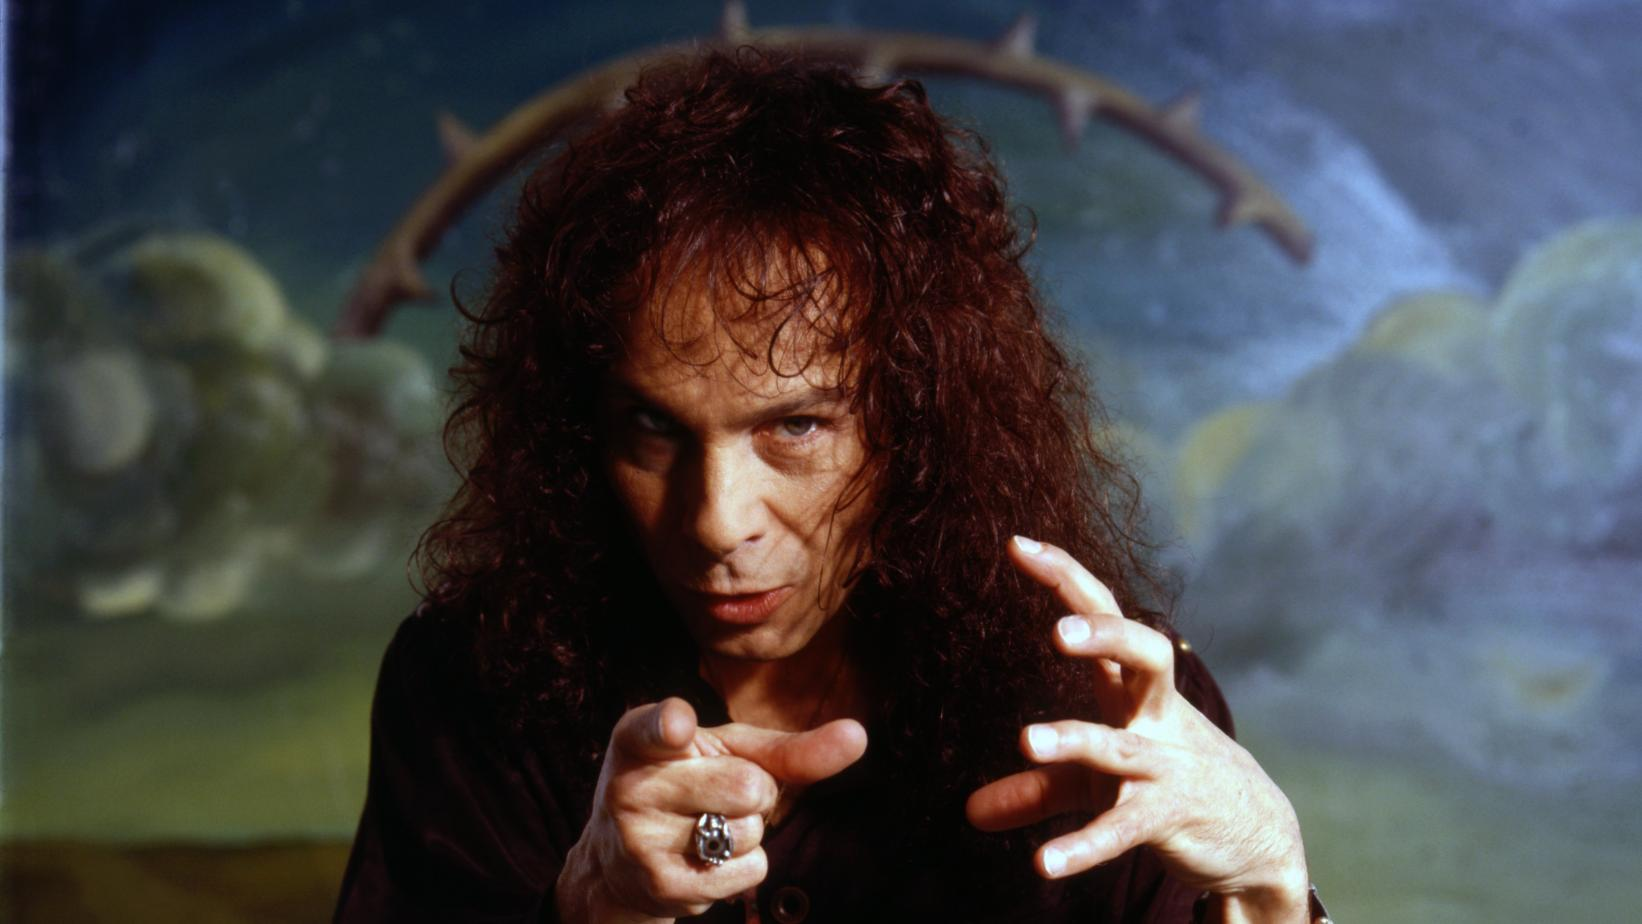 Ronnie James Dio in 1990